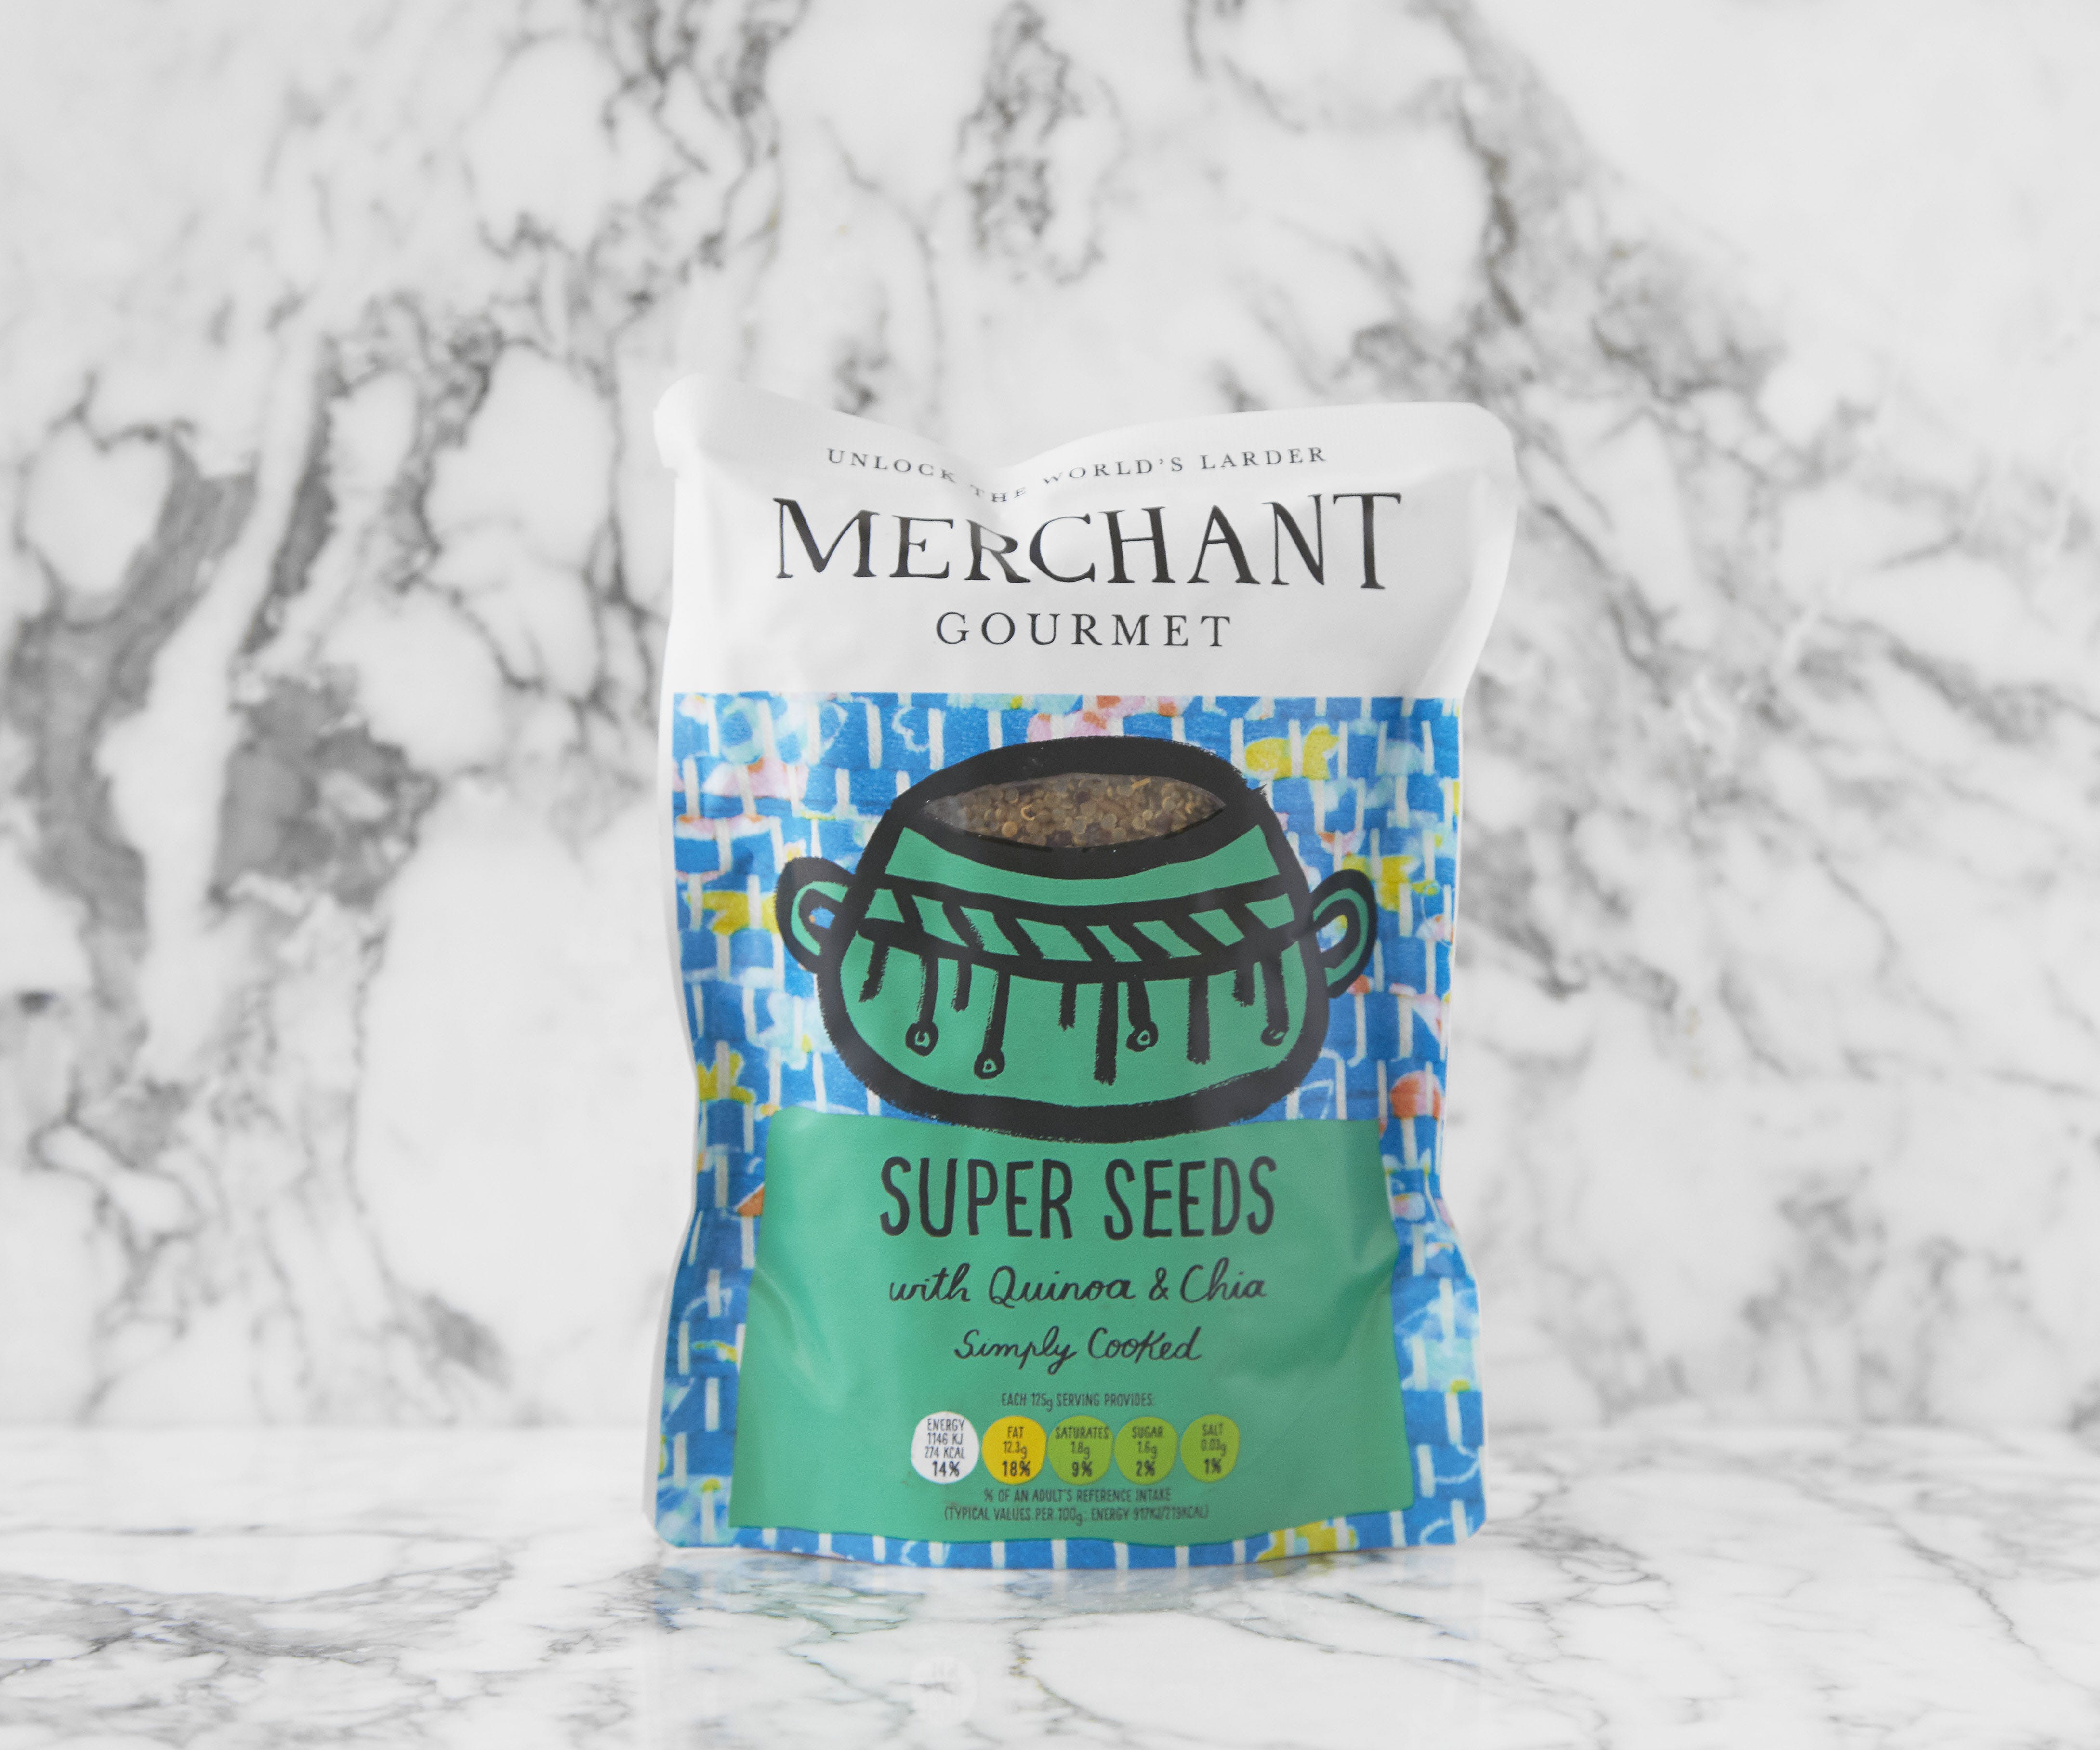 Super Seeds with Quinoa & Chia - Cooked